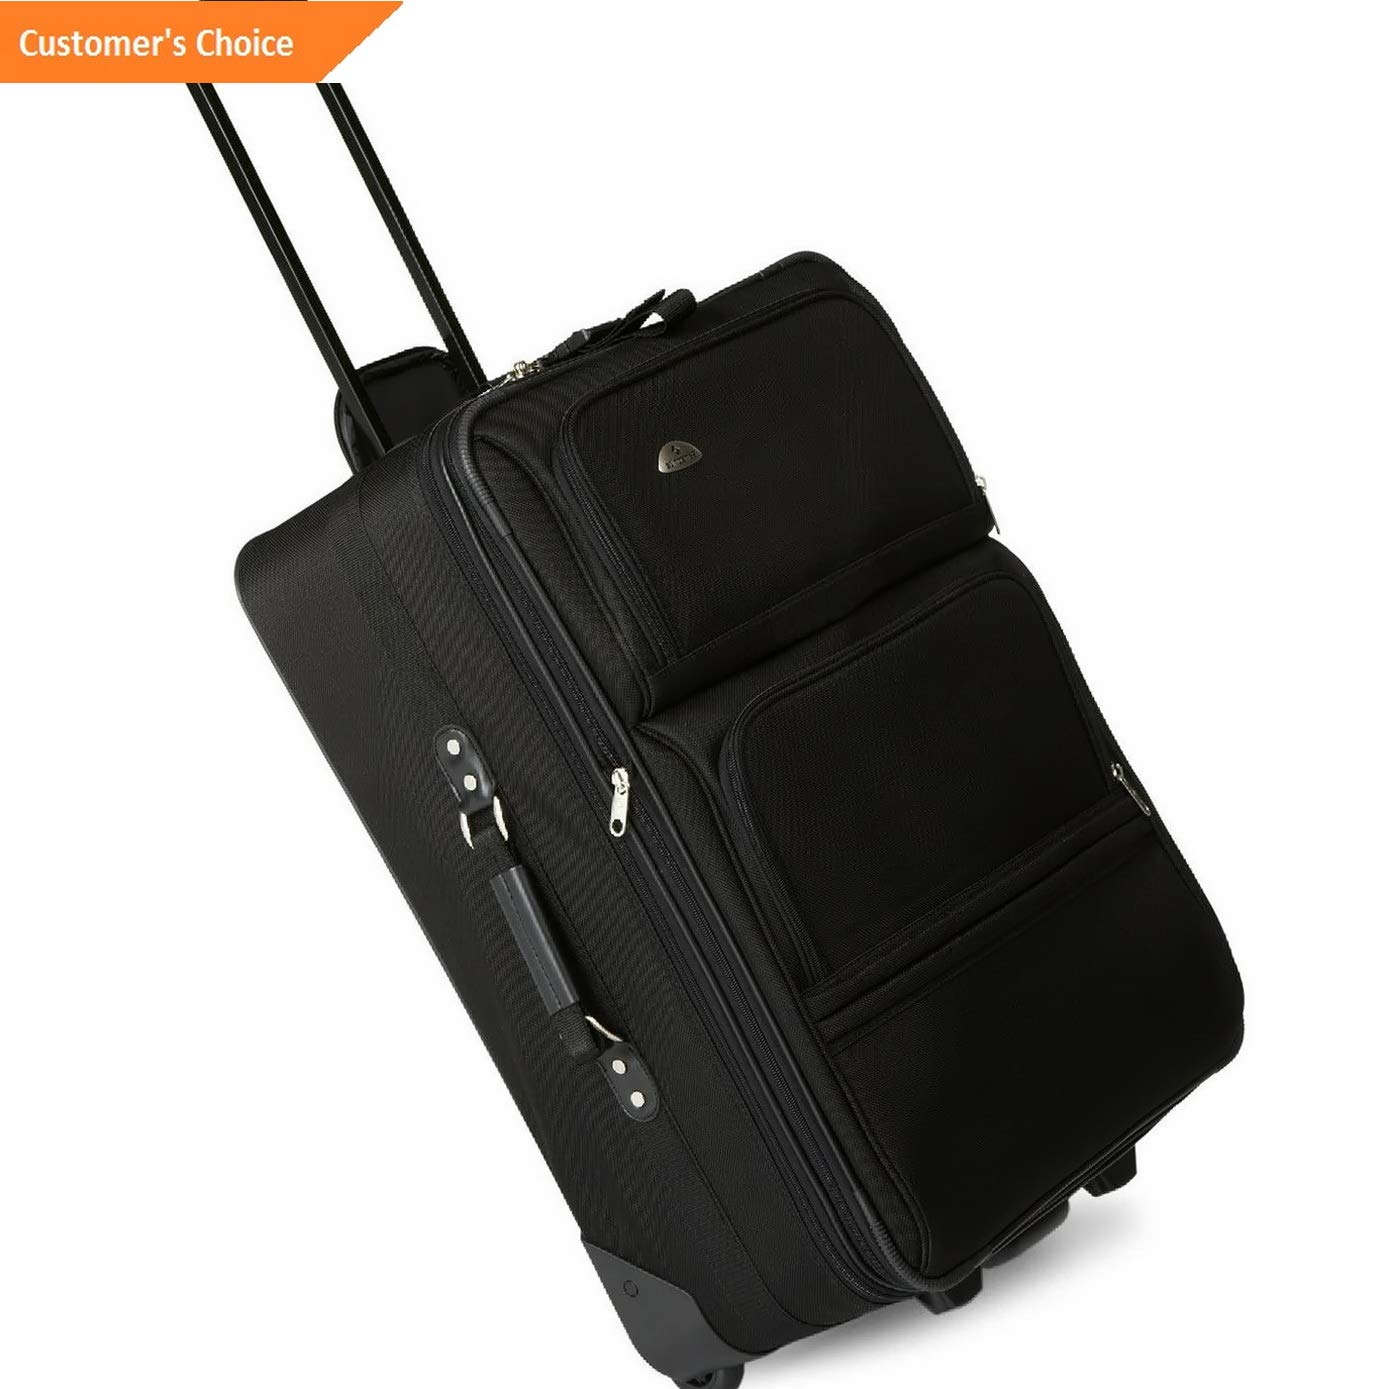 Amazon.com | Sandover Samsonite 5 Piece Nested gage Suitcase Set - 25 Inch, 20 Inch More | Model LGGG - 11832 | | Luggage Sets